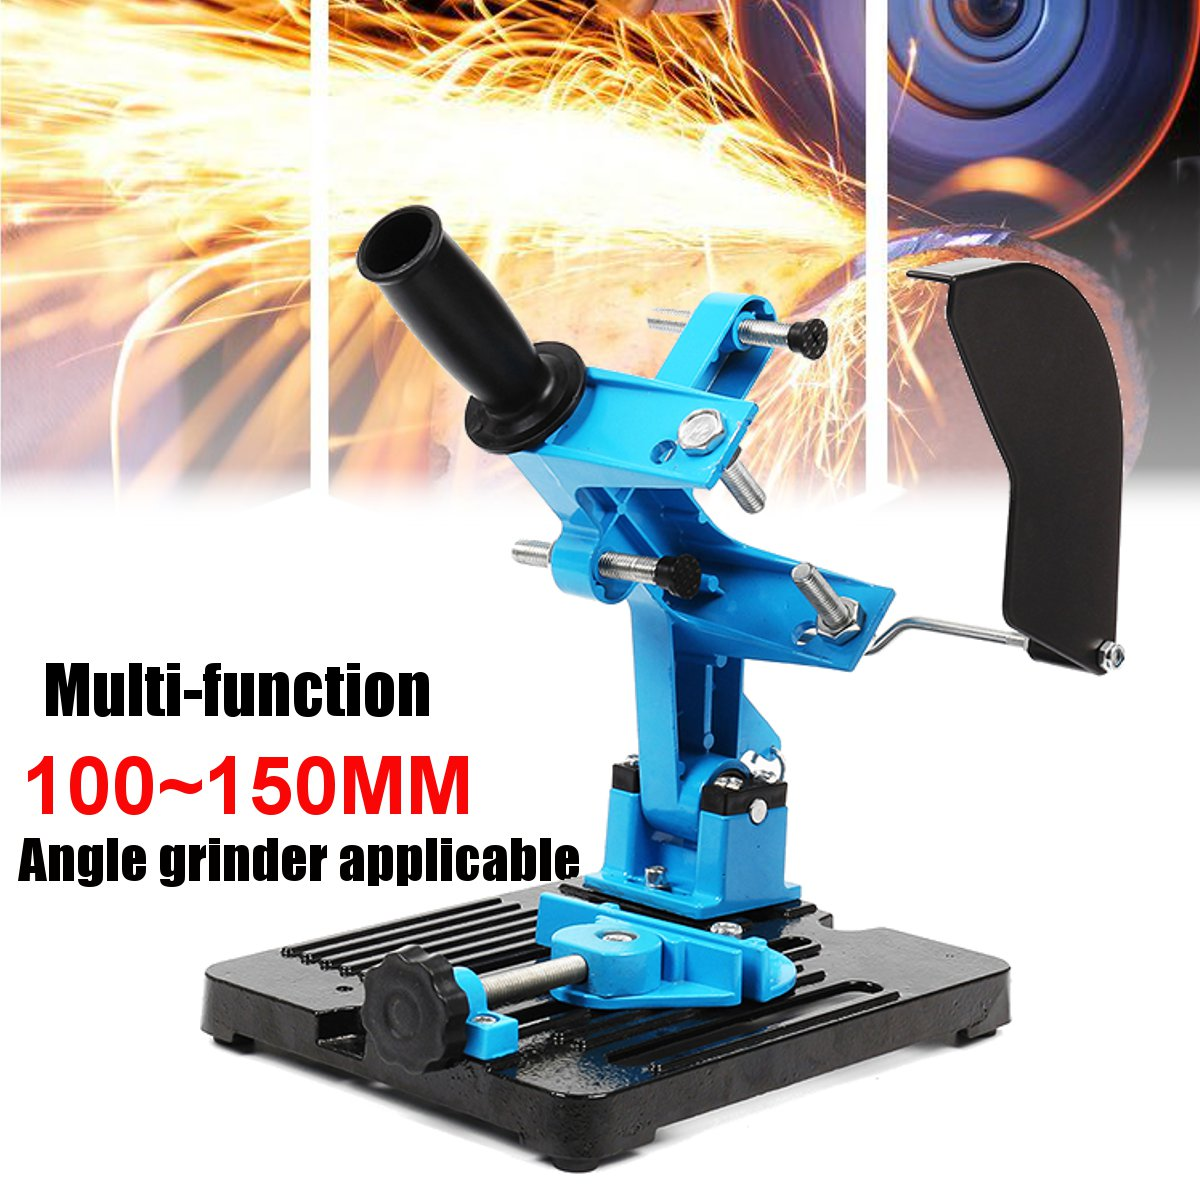 115-150 Angle Grinder Stand Double Bearing Bracket Angle Cutter Support Bracket Holder Dock Cast Iron Base Holder 125 angle grinding frame angle grinder holder stand bracket support angle grinder conversion cutter accessories for 115 to 125mm